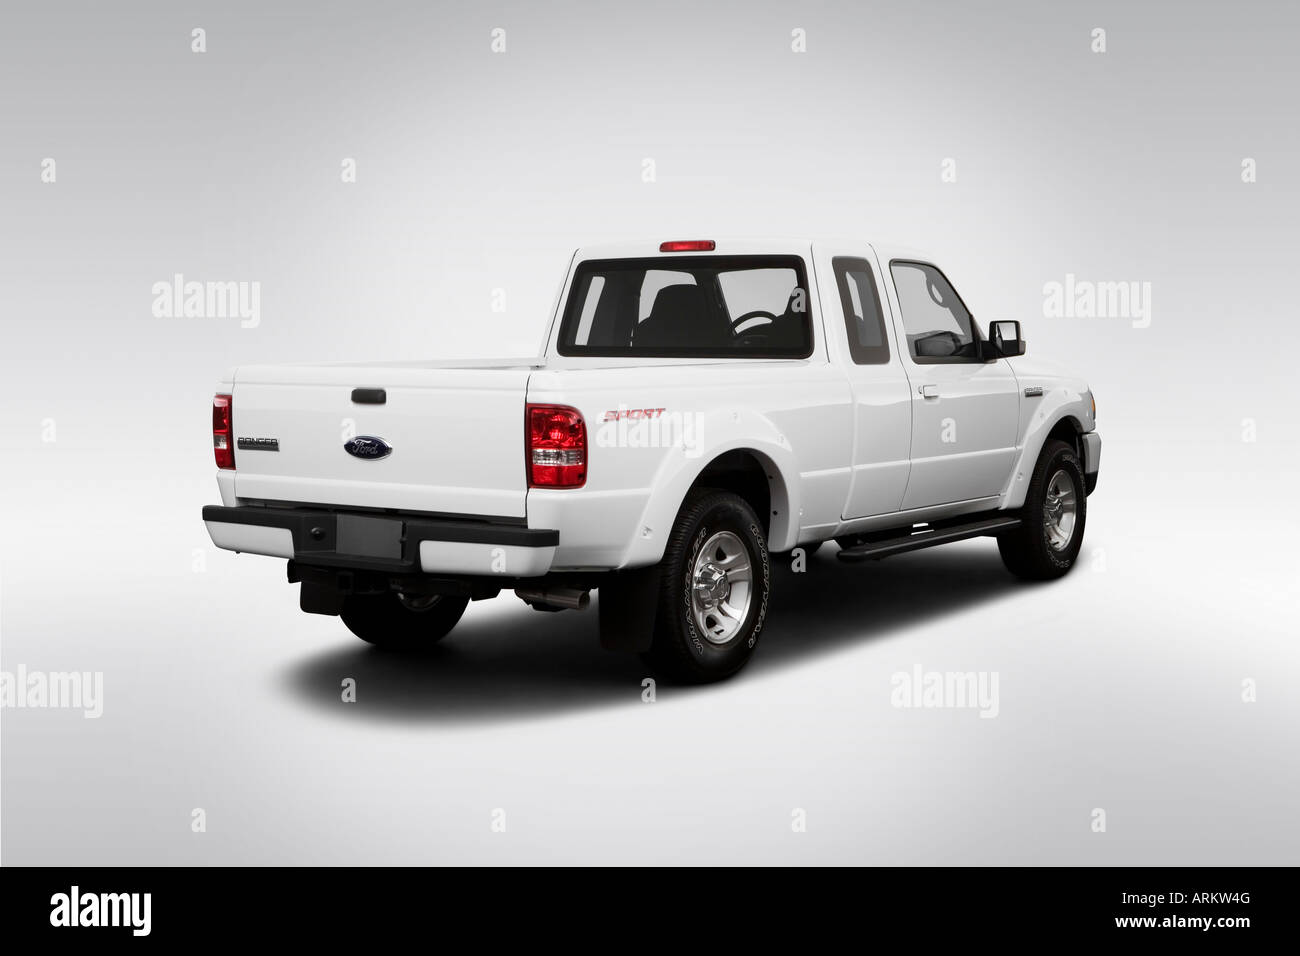 2008 ford ranger sport in white rear angle view